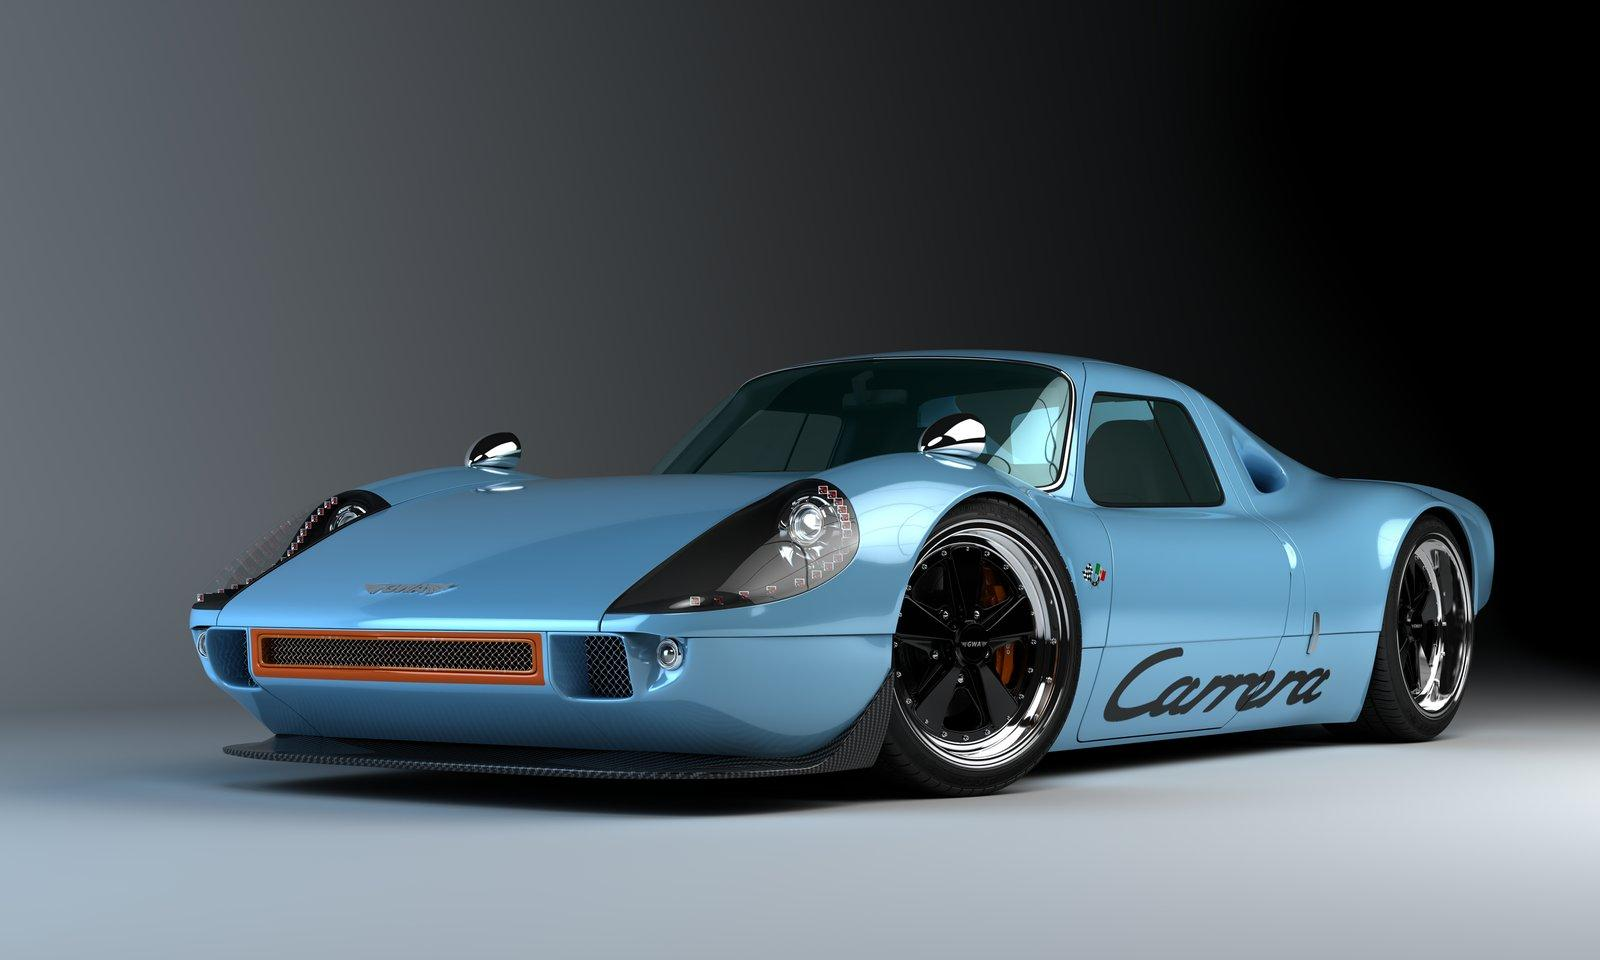 Gullwing America P904 Carrera 2 Visionary plans of Gullwing